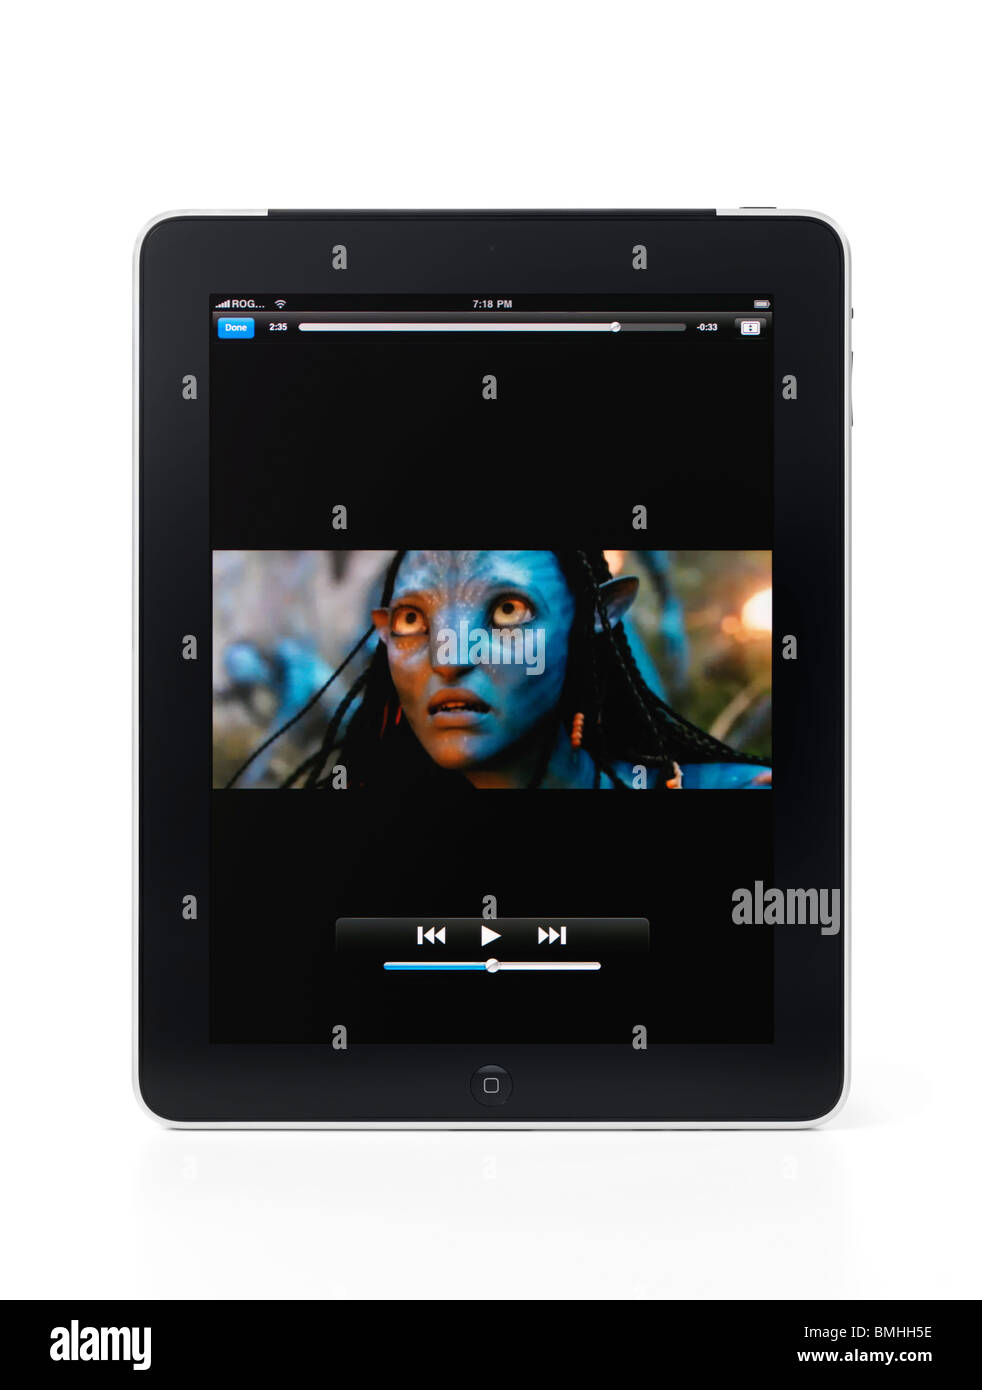 Avatar movie trailer playing on Apple iPad 3G tablet computer isolated on white background with clipping path - Stock Image